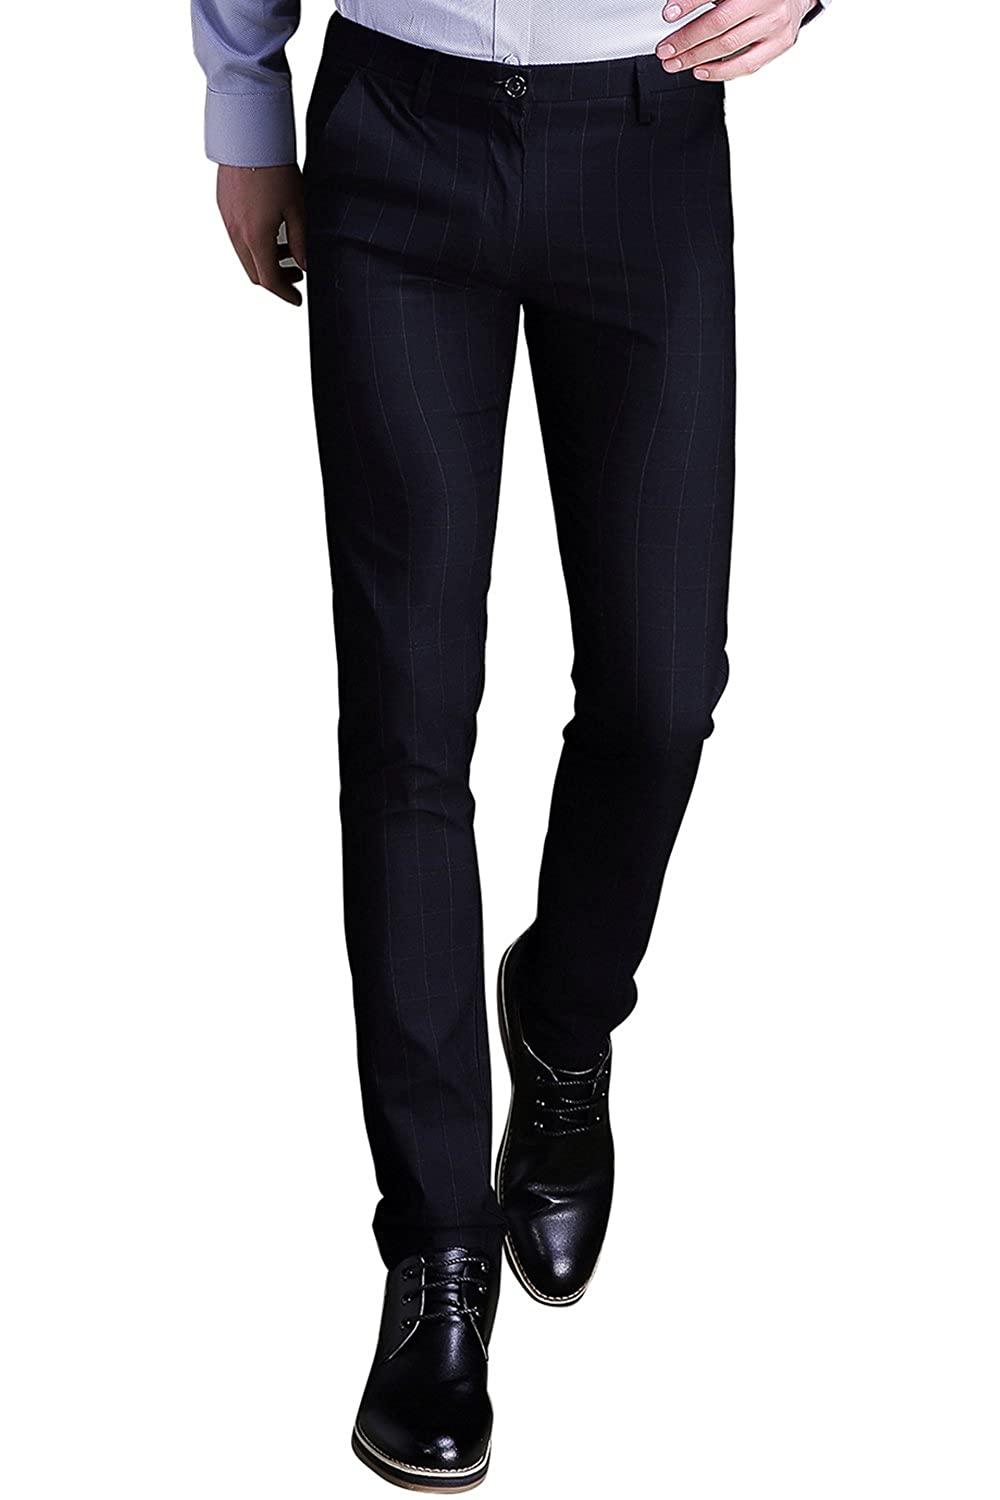 48fc6c293a1f SLIM VERSION - the Middle-waisted design, comfortable dressing experience,  docile fit. Thigh circumference is wide, to ensure the comfort and  flexibility, ...